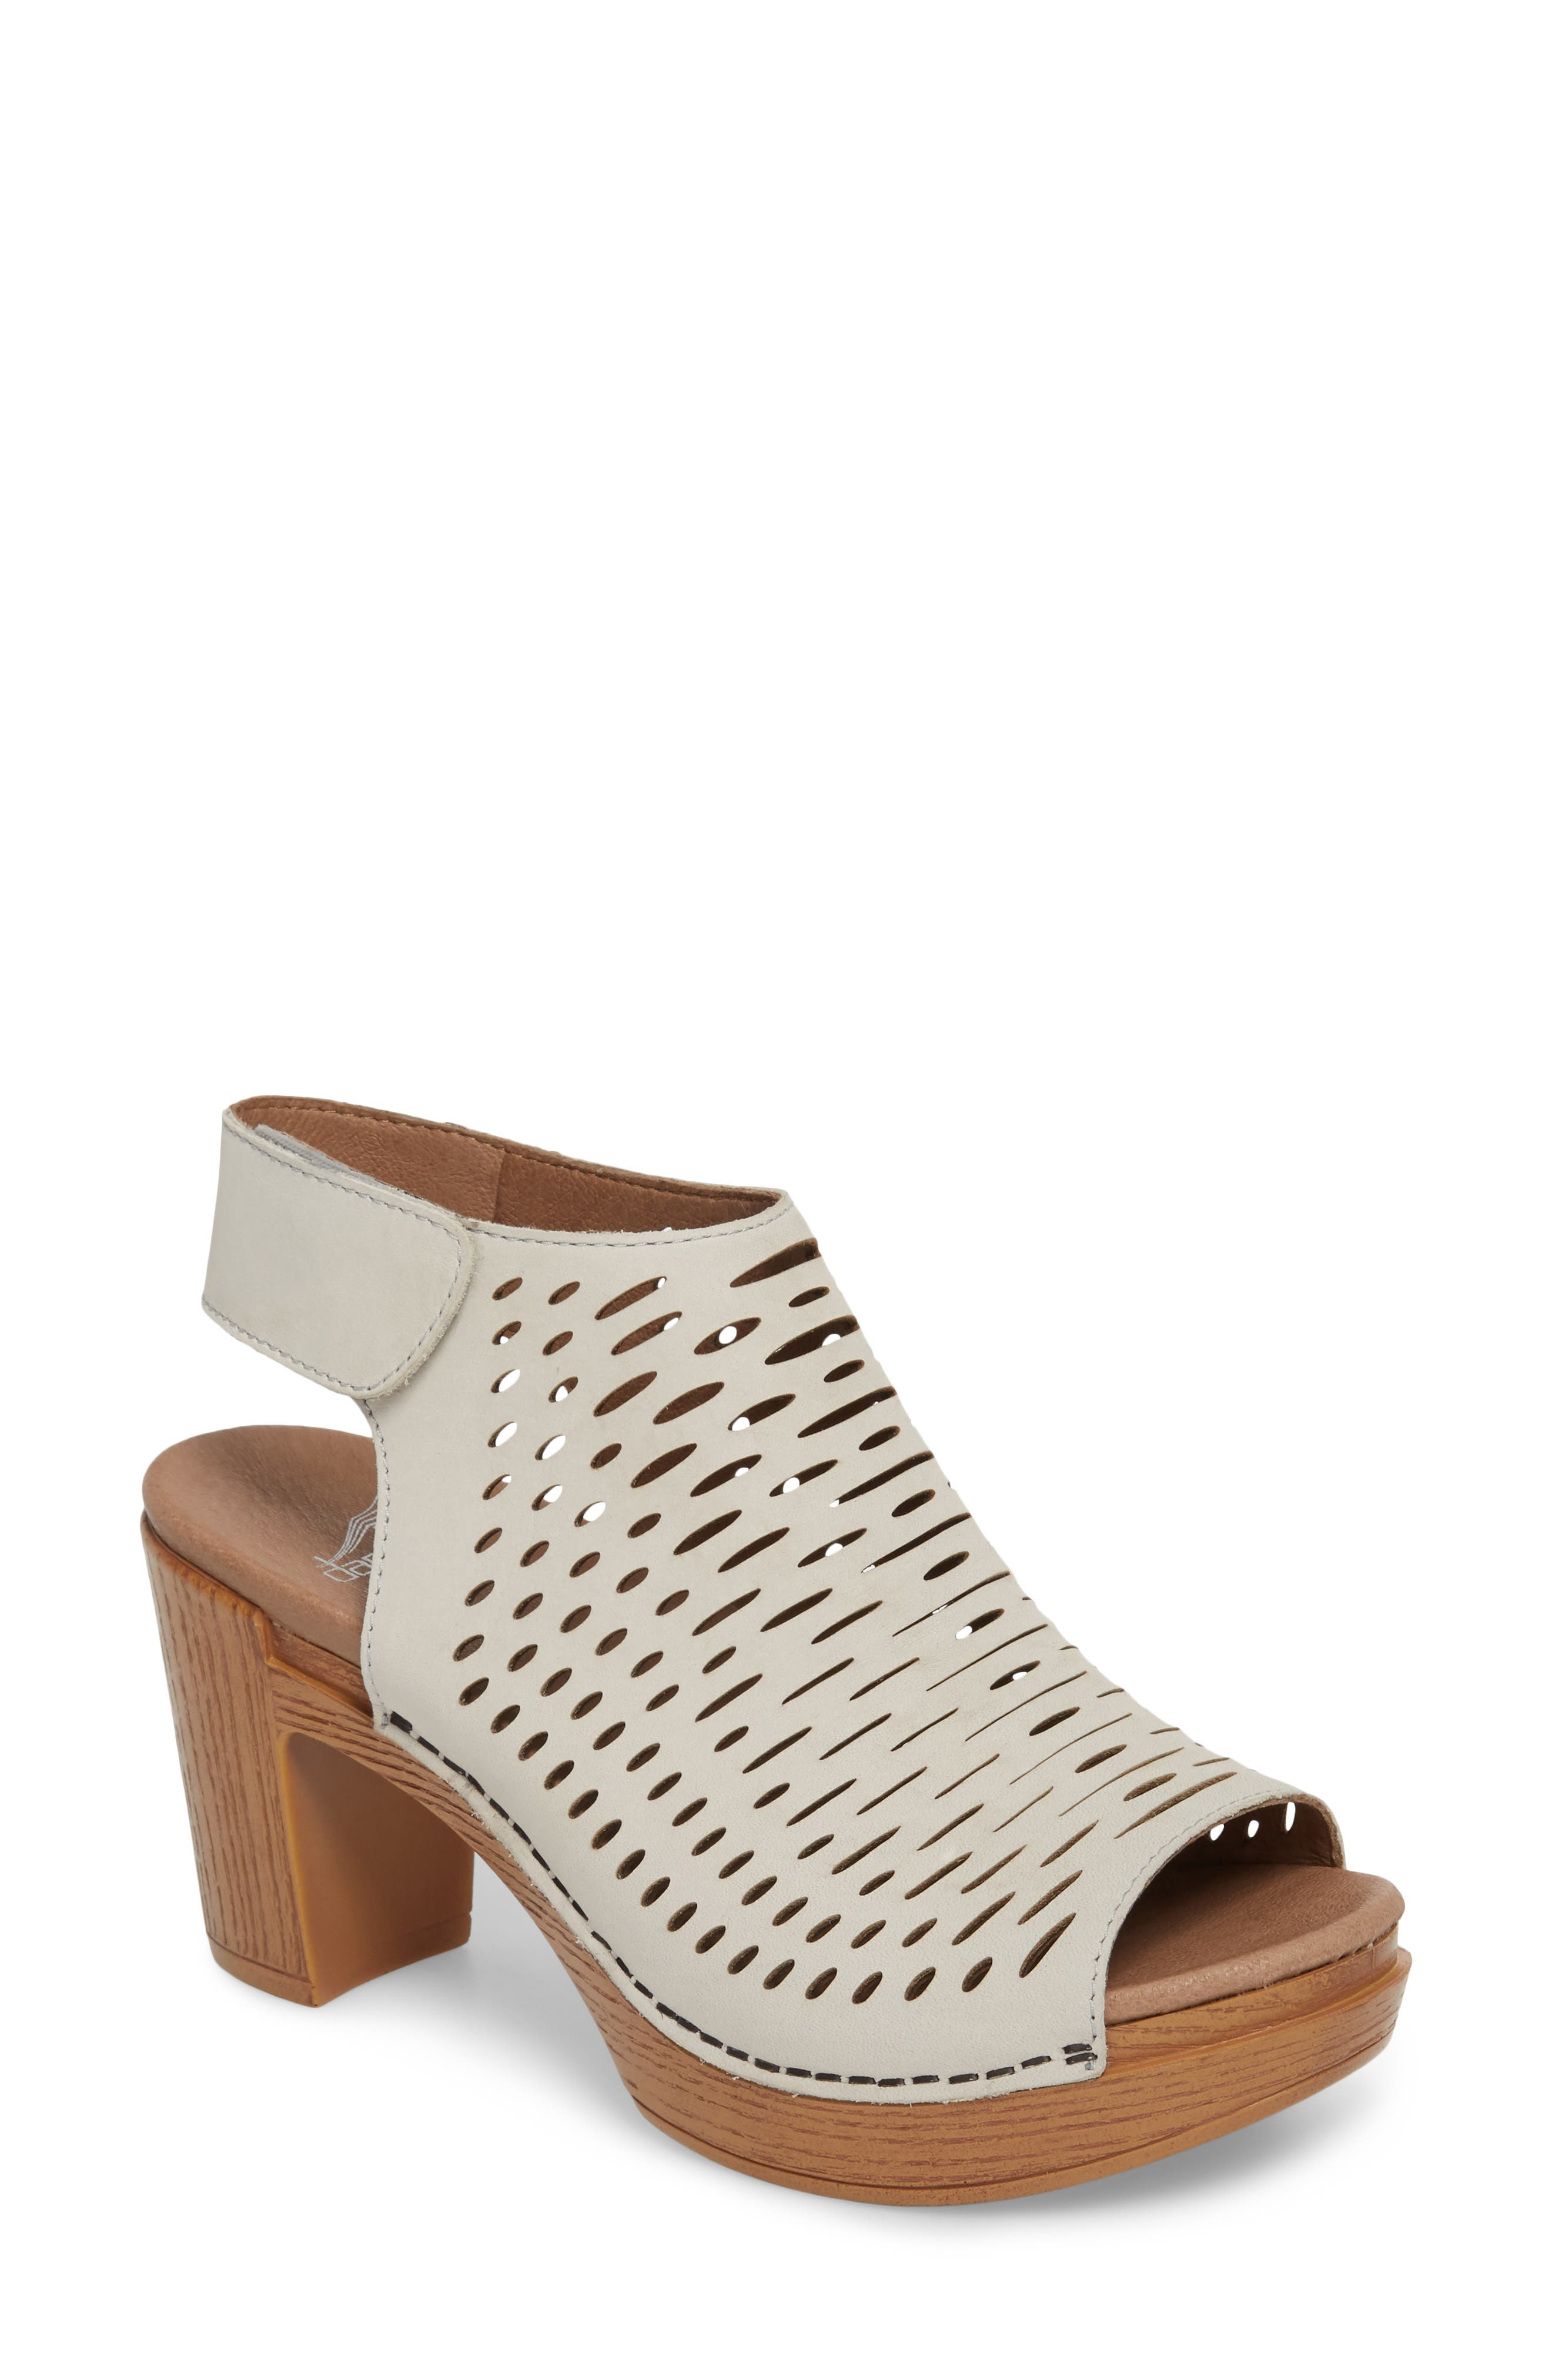 Danae Block Heel Sandal,                         Main,                         color, Oyster Milled Nubuck Leather